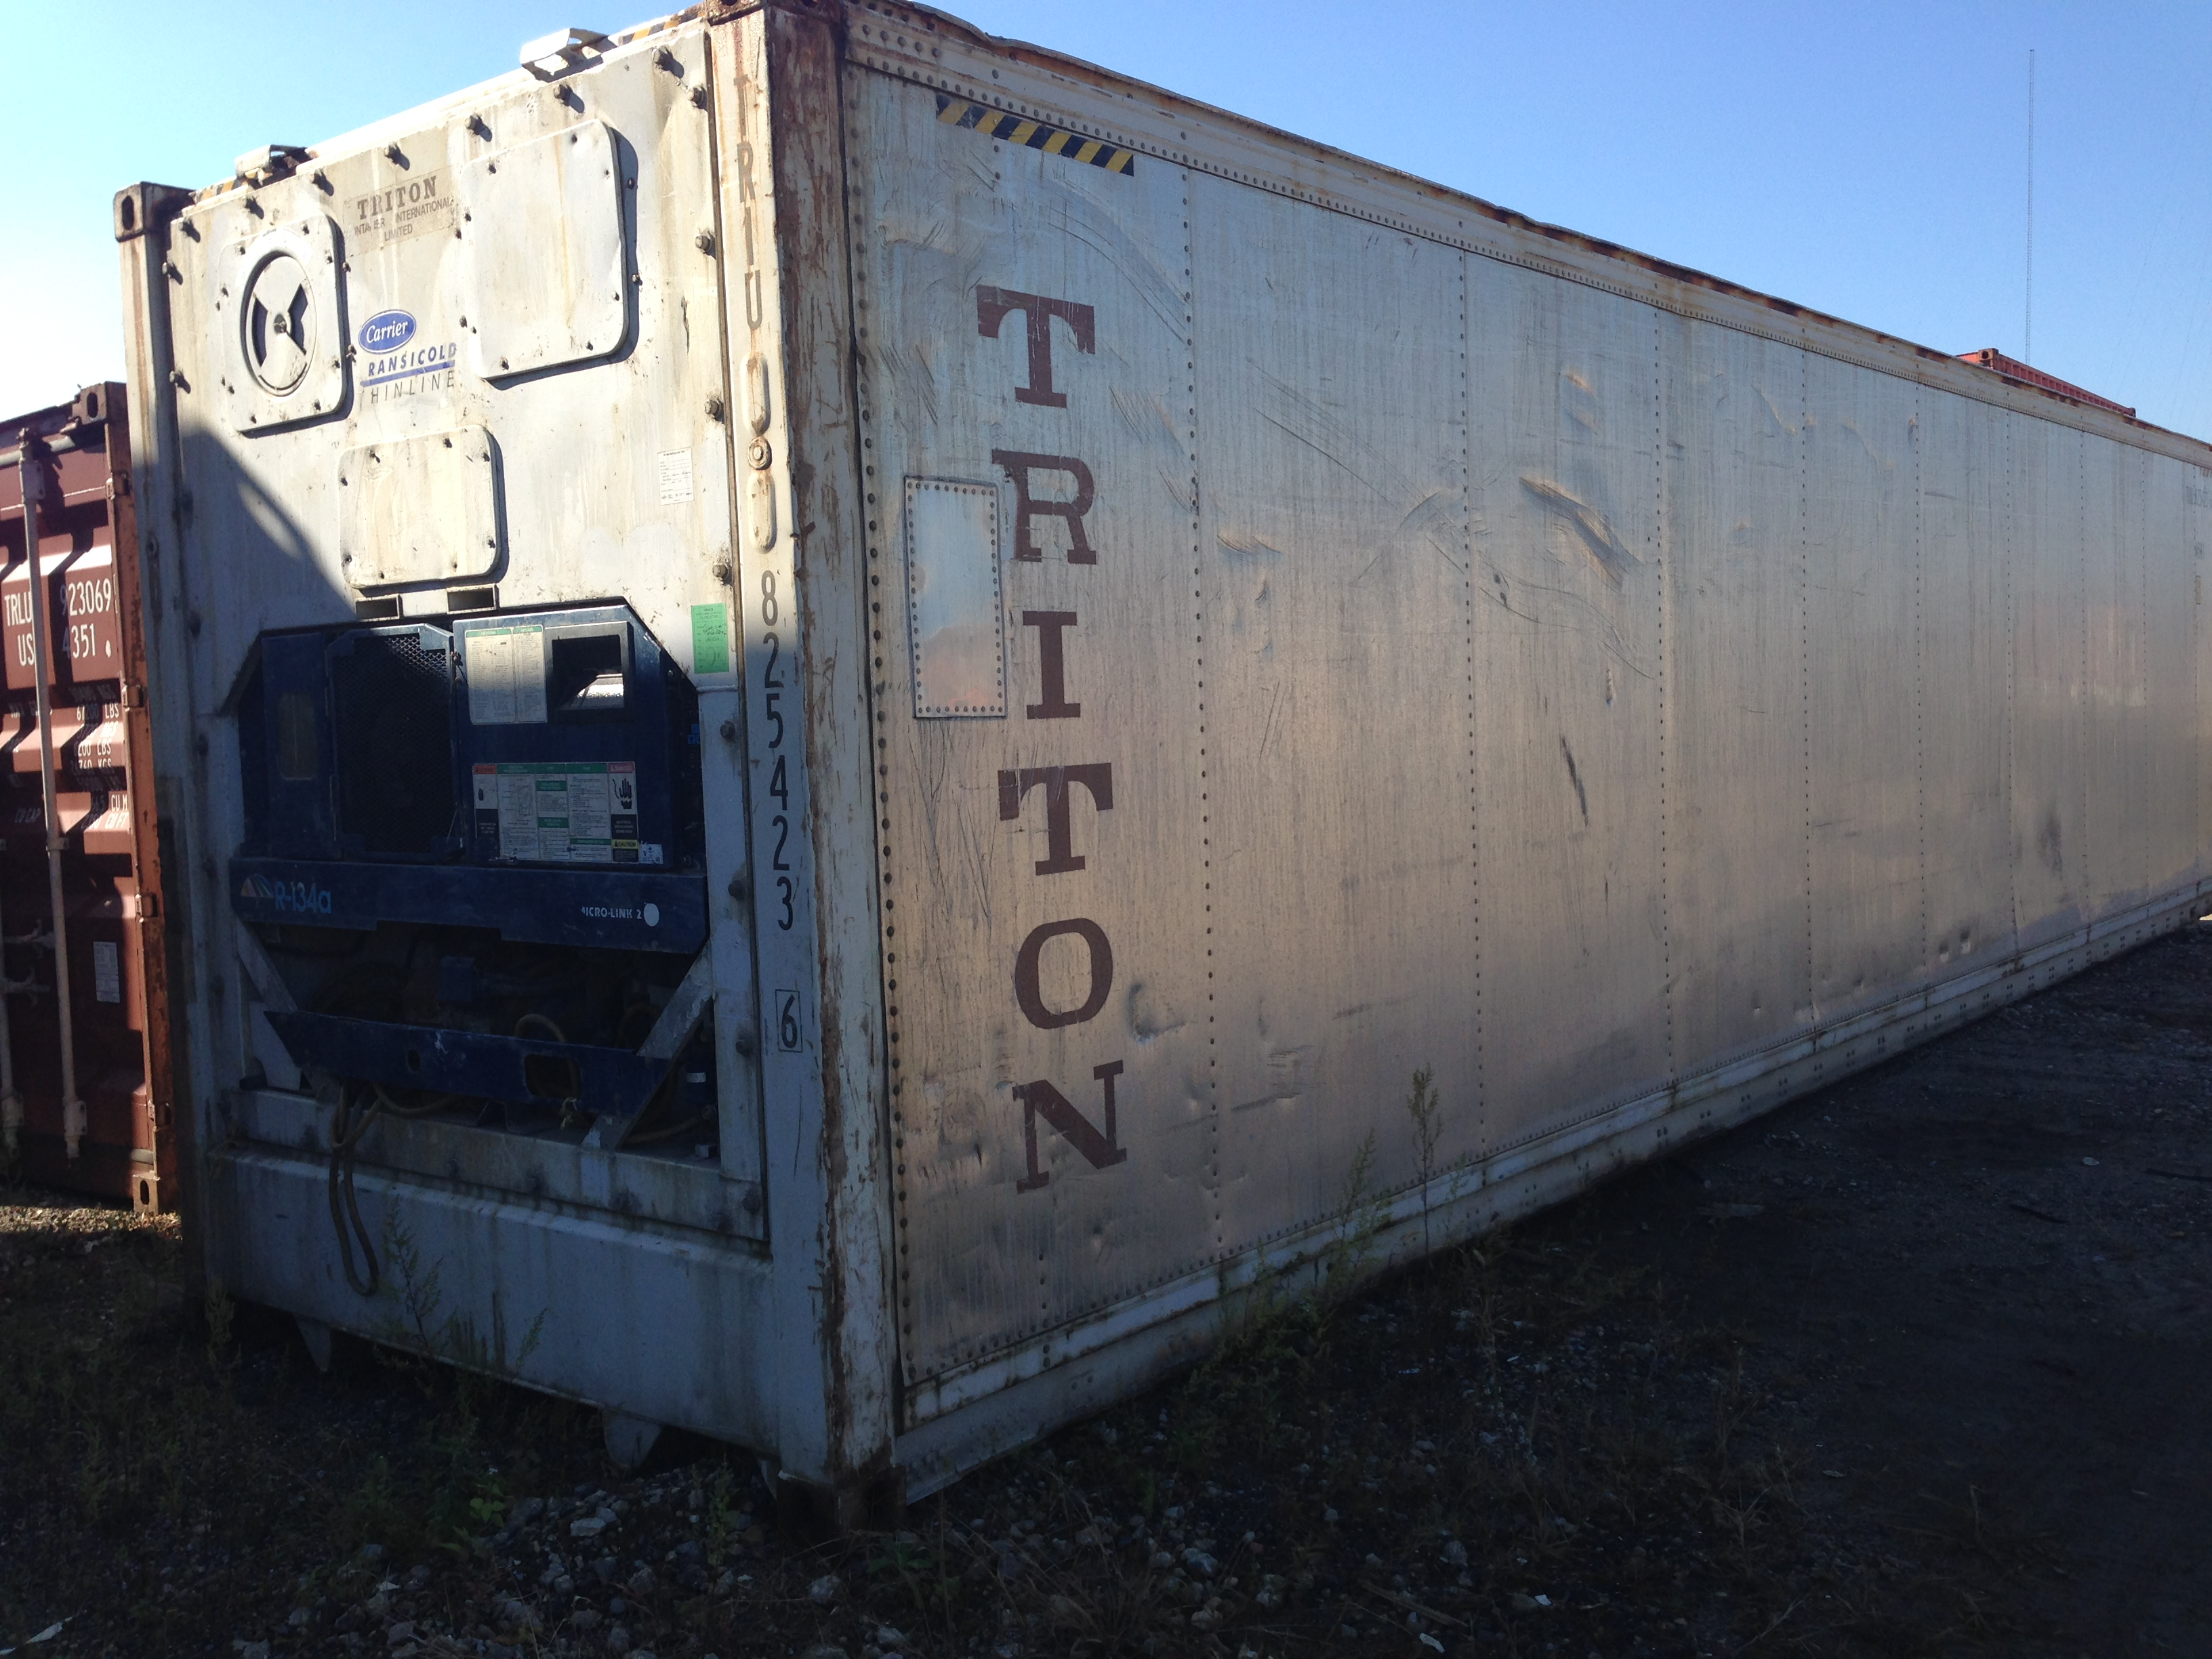 Used 40′ Refrigerated Freight Container Exterior